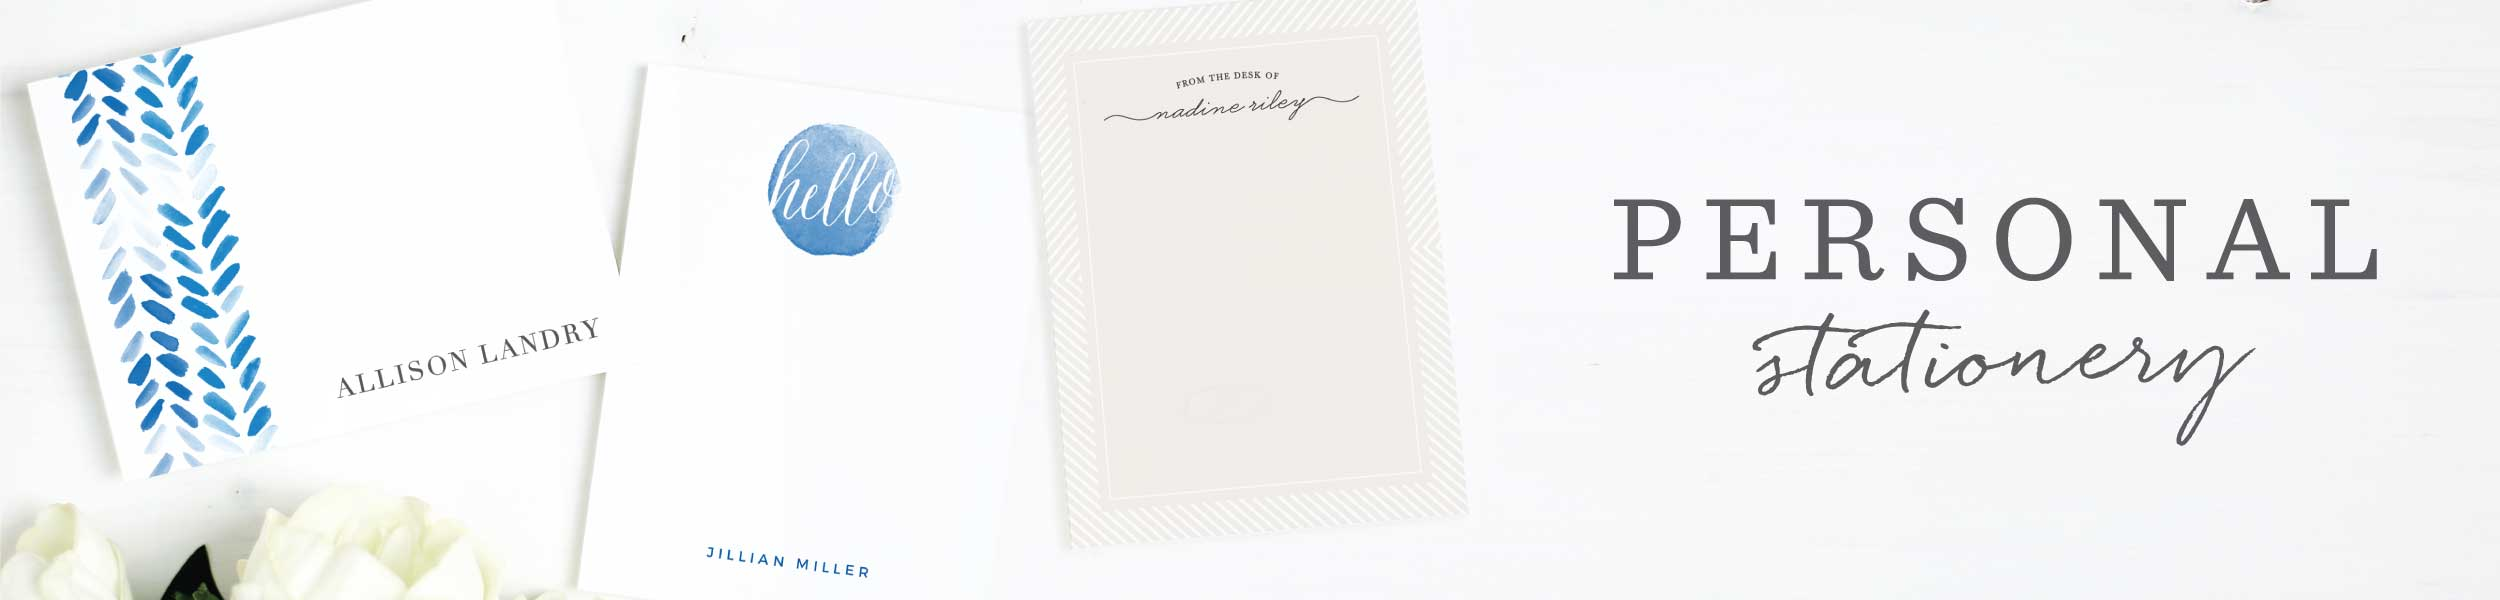 Stationery & Notecards